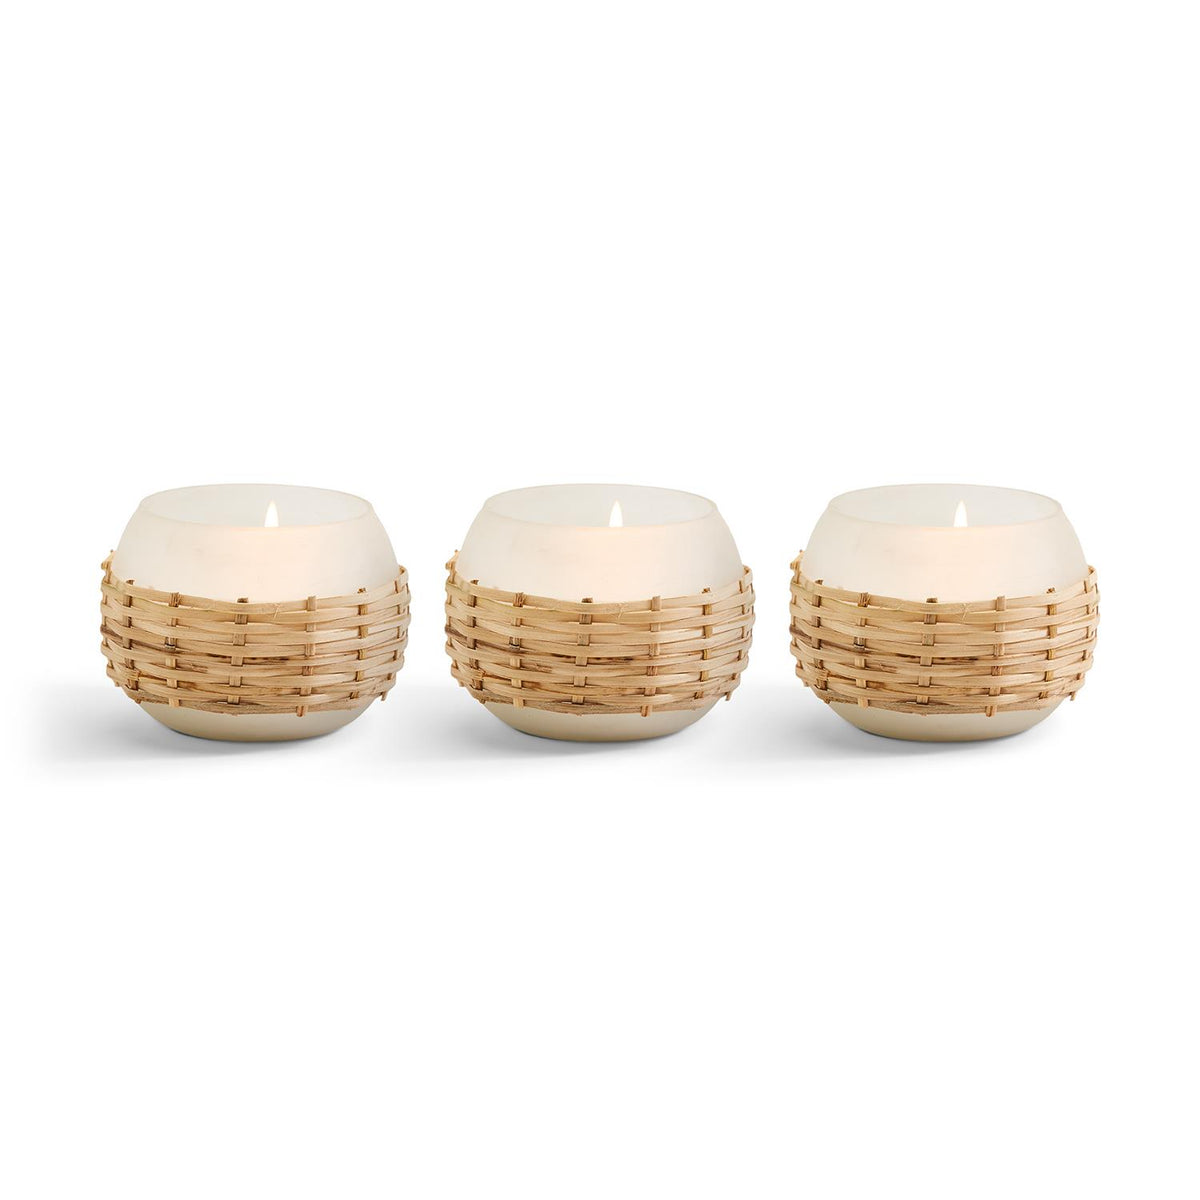 Frosted White and Rattan Candle